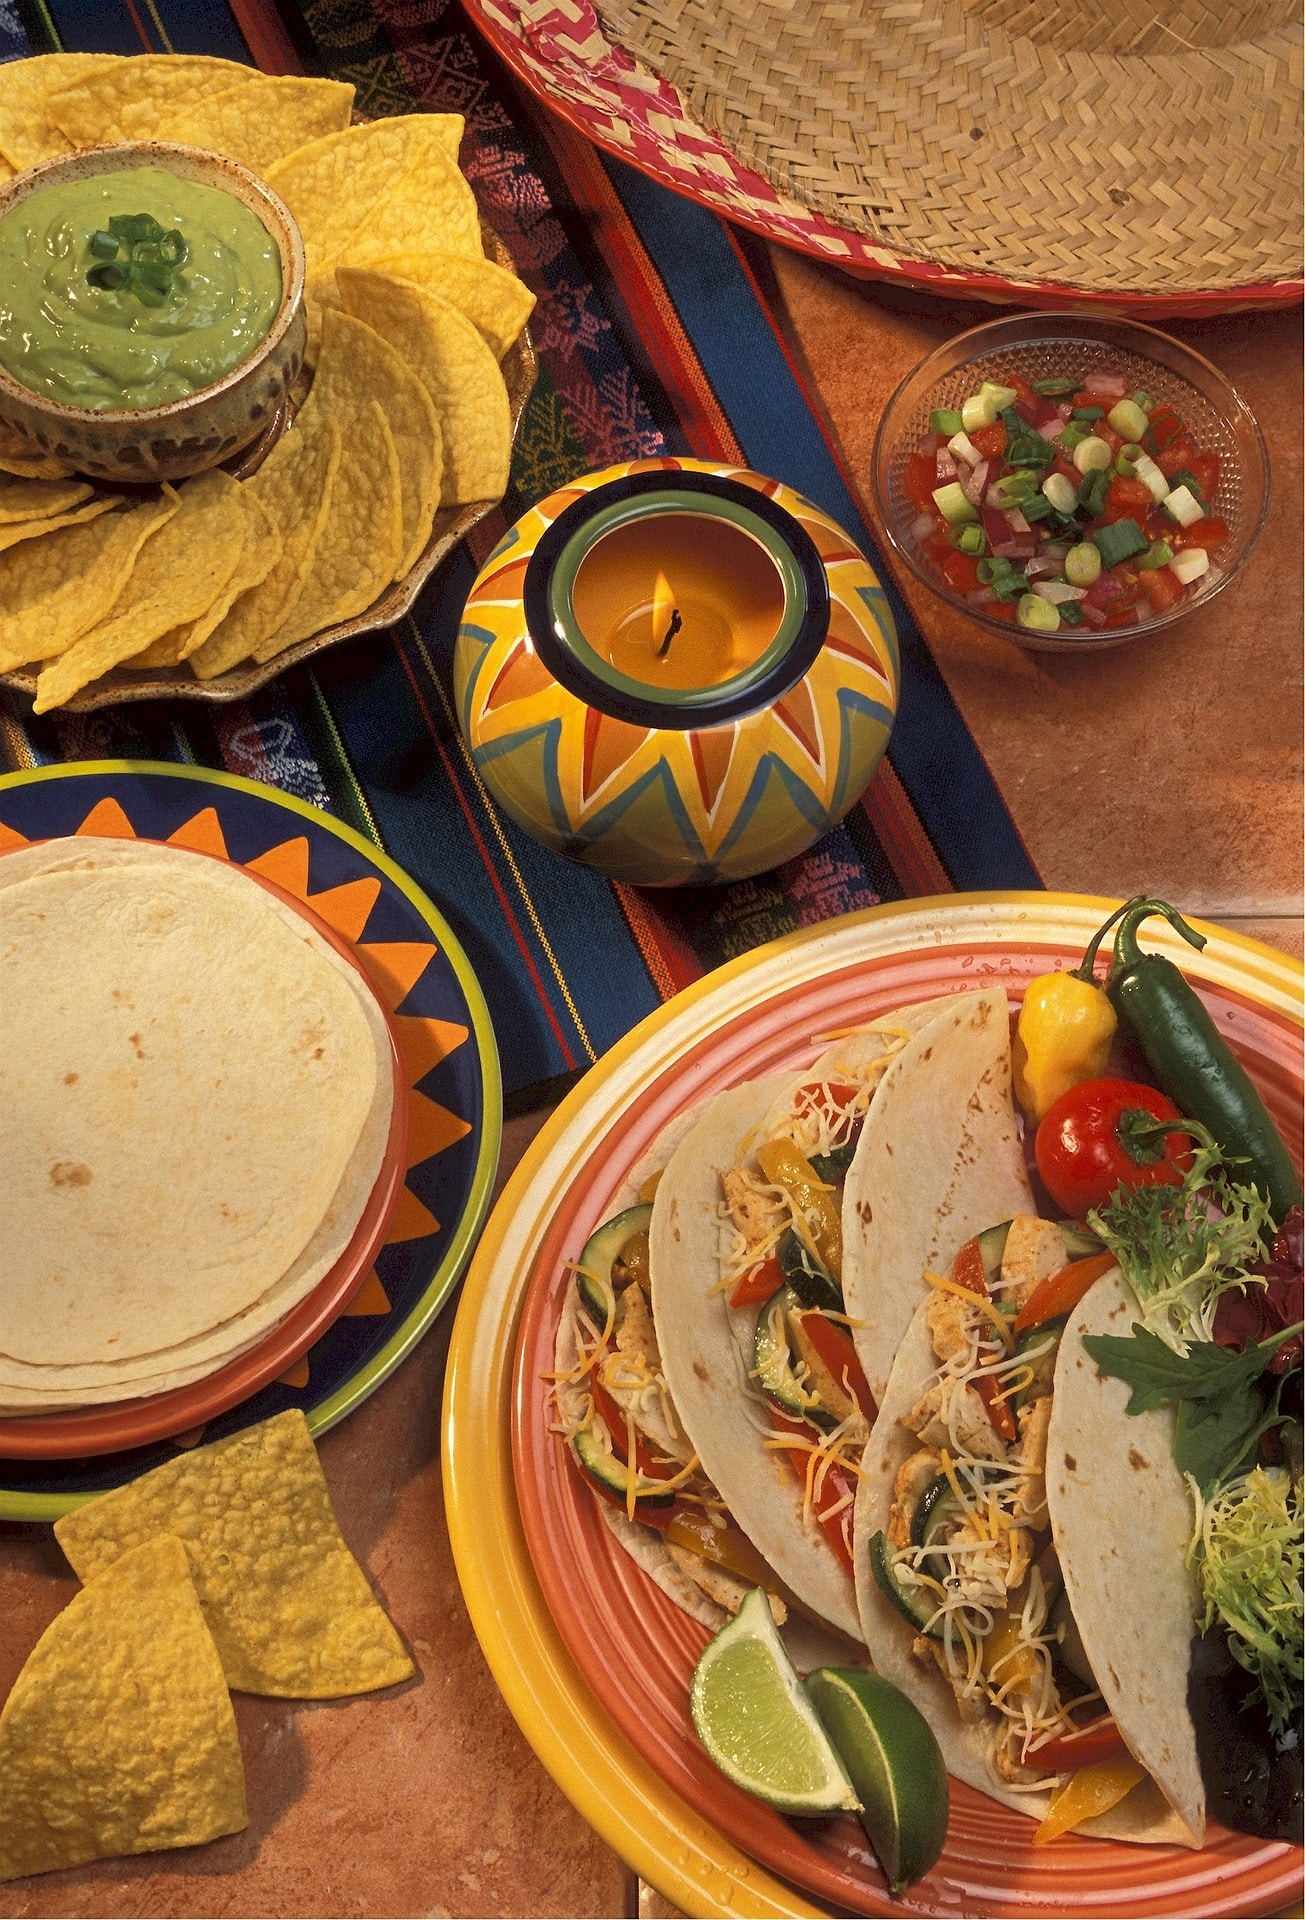 Viva Mexico – Throw an Awesome Cinco de Mayo Party via @mermaidsandmojitos